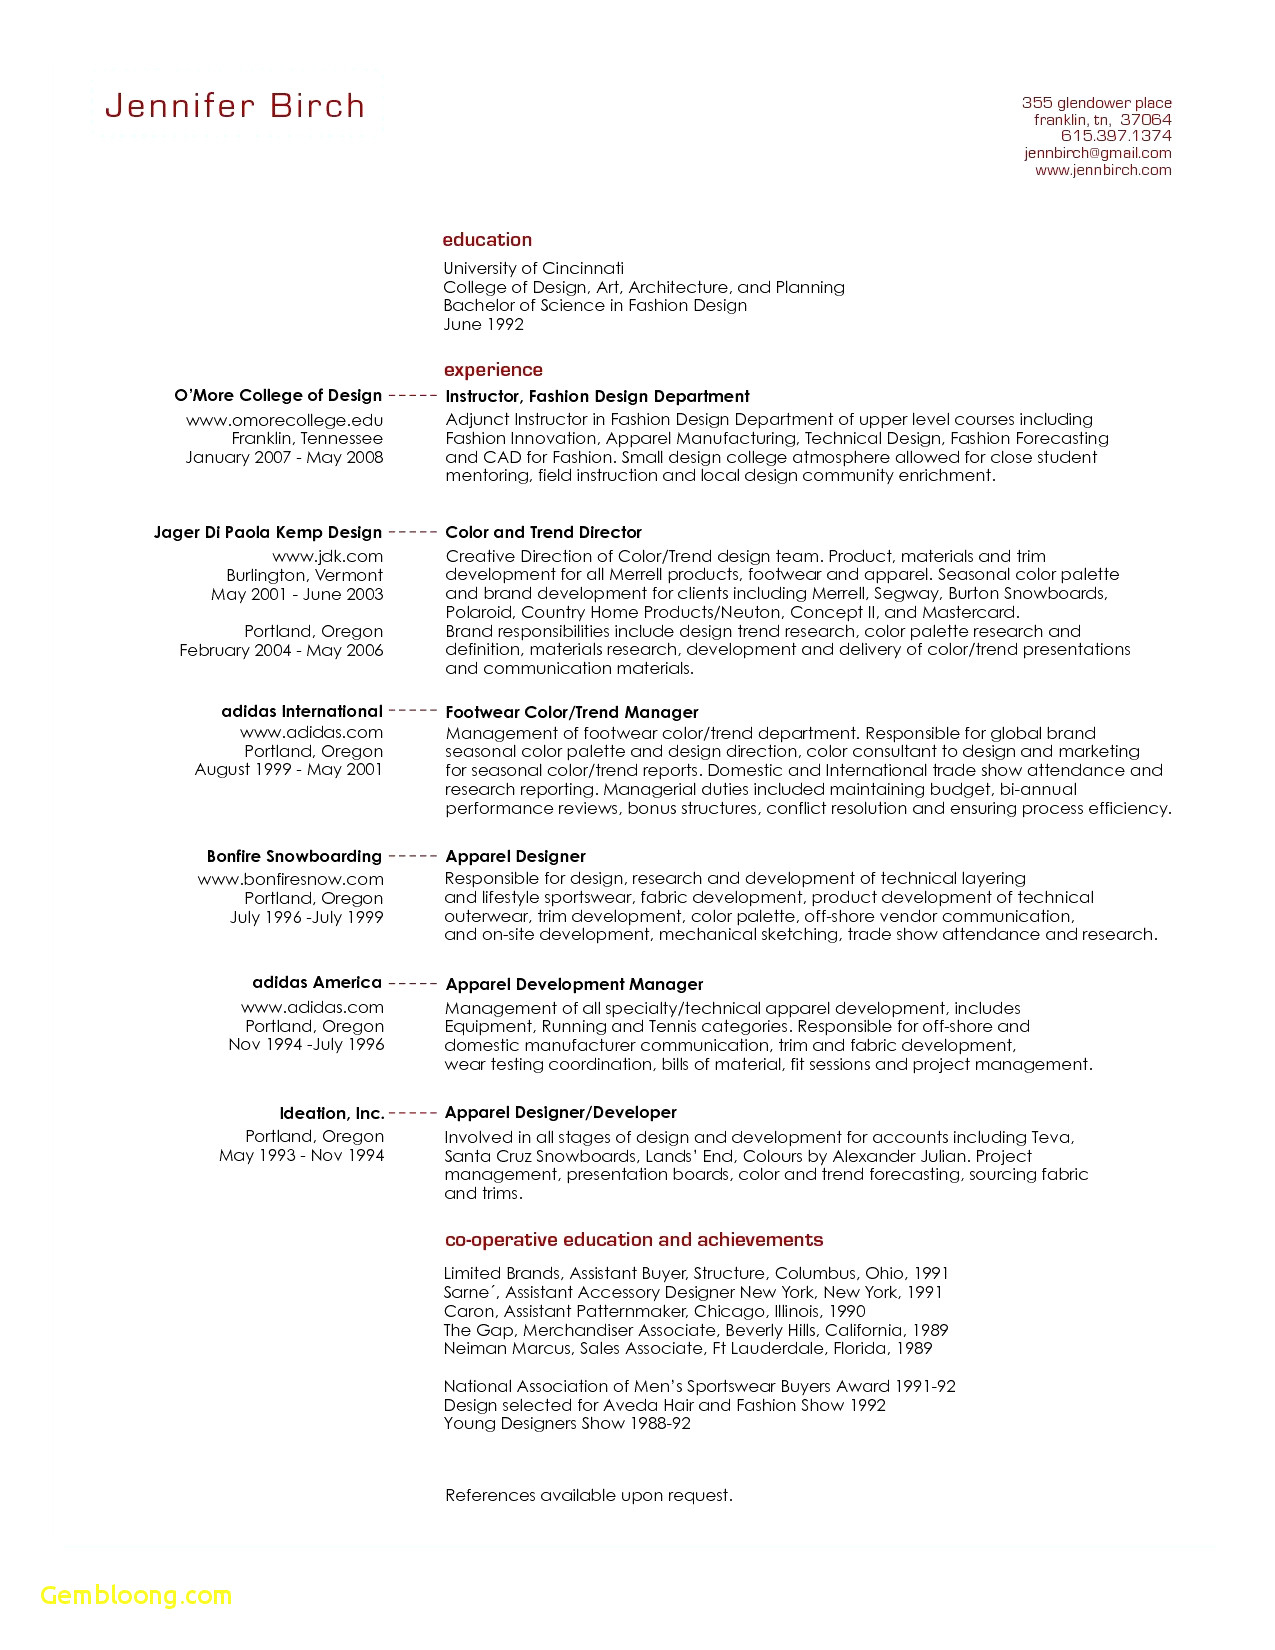 8 wyotech resume ideas